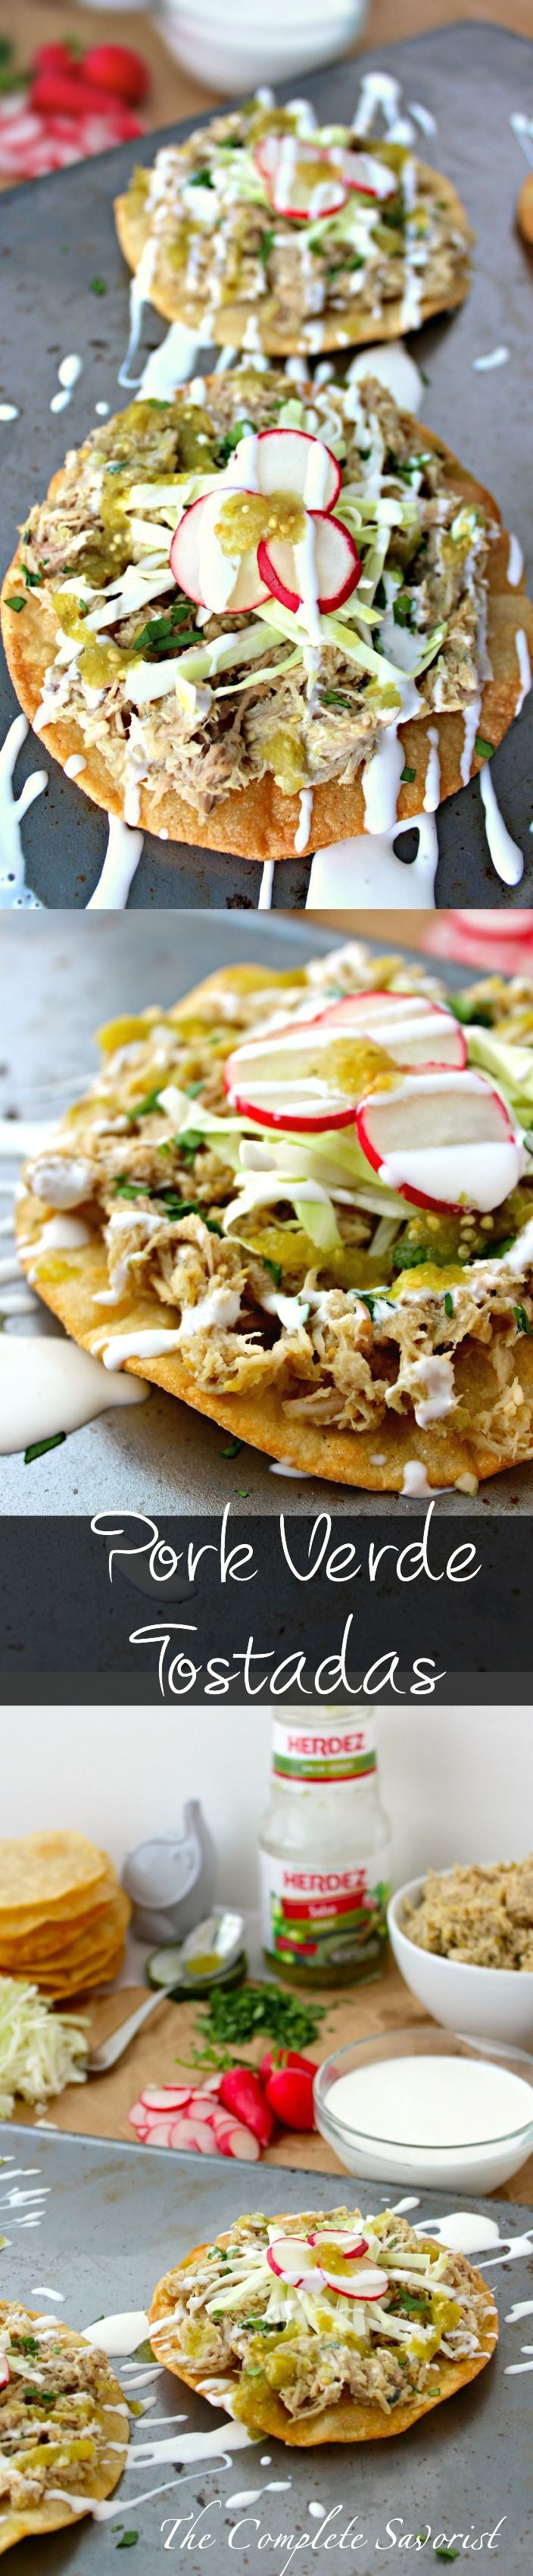 Pork Verde Tostadas ~ Slow cooked pork then quickly fried up carnitas-style, served on a crisp corn tortilla and topped with with cabbage, radishes, crema, and salsa verde